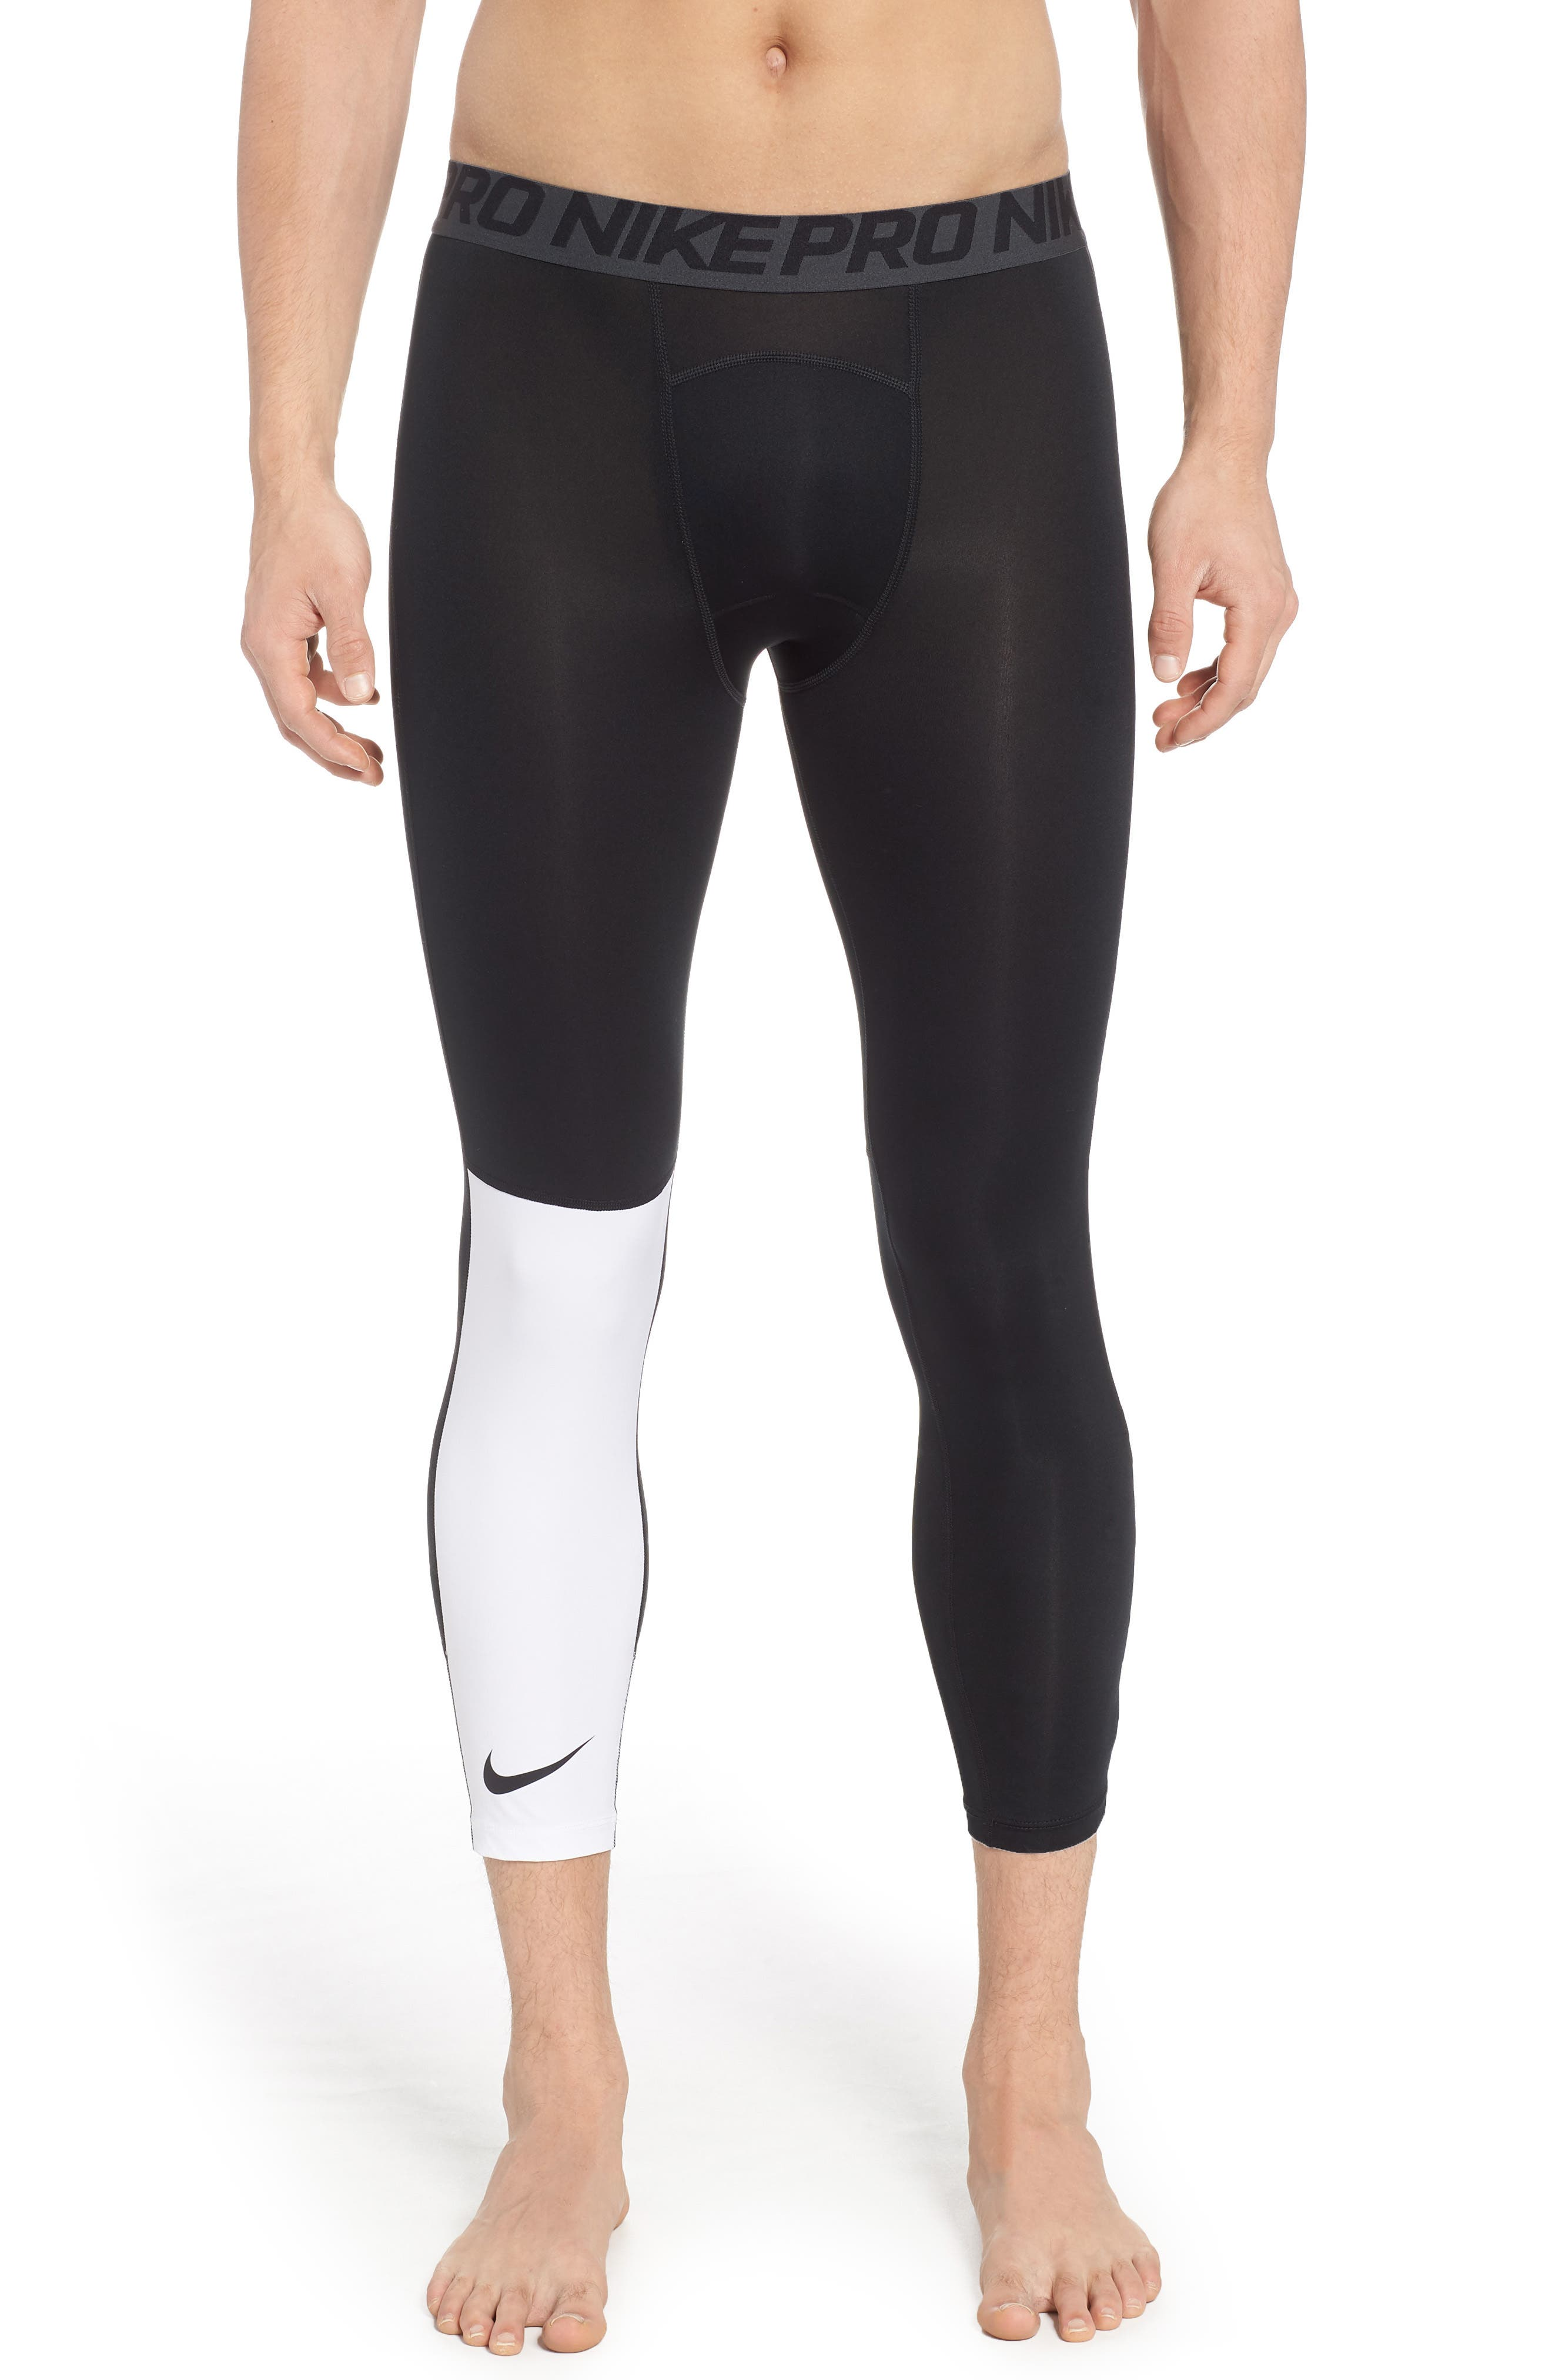 NP Running Tights,                         Main,                         color, 010